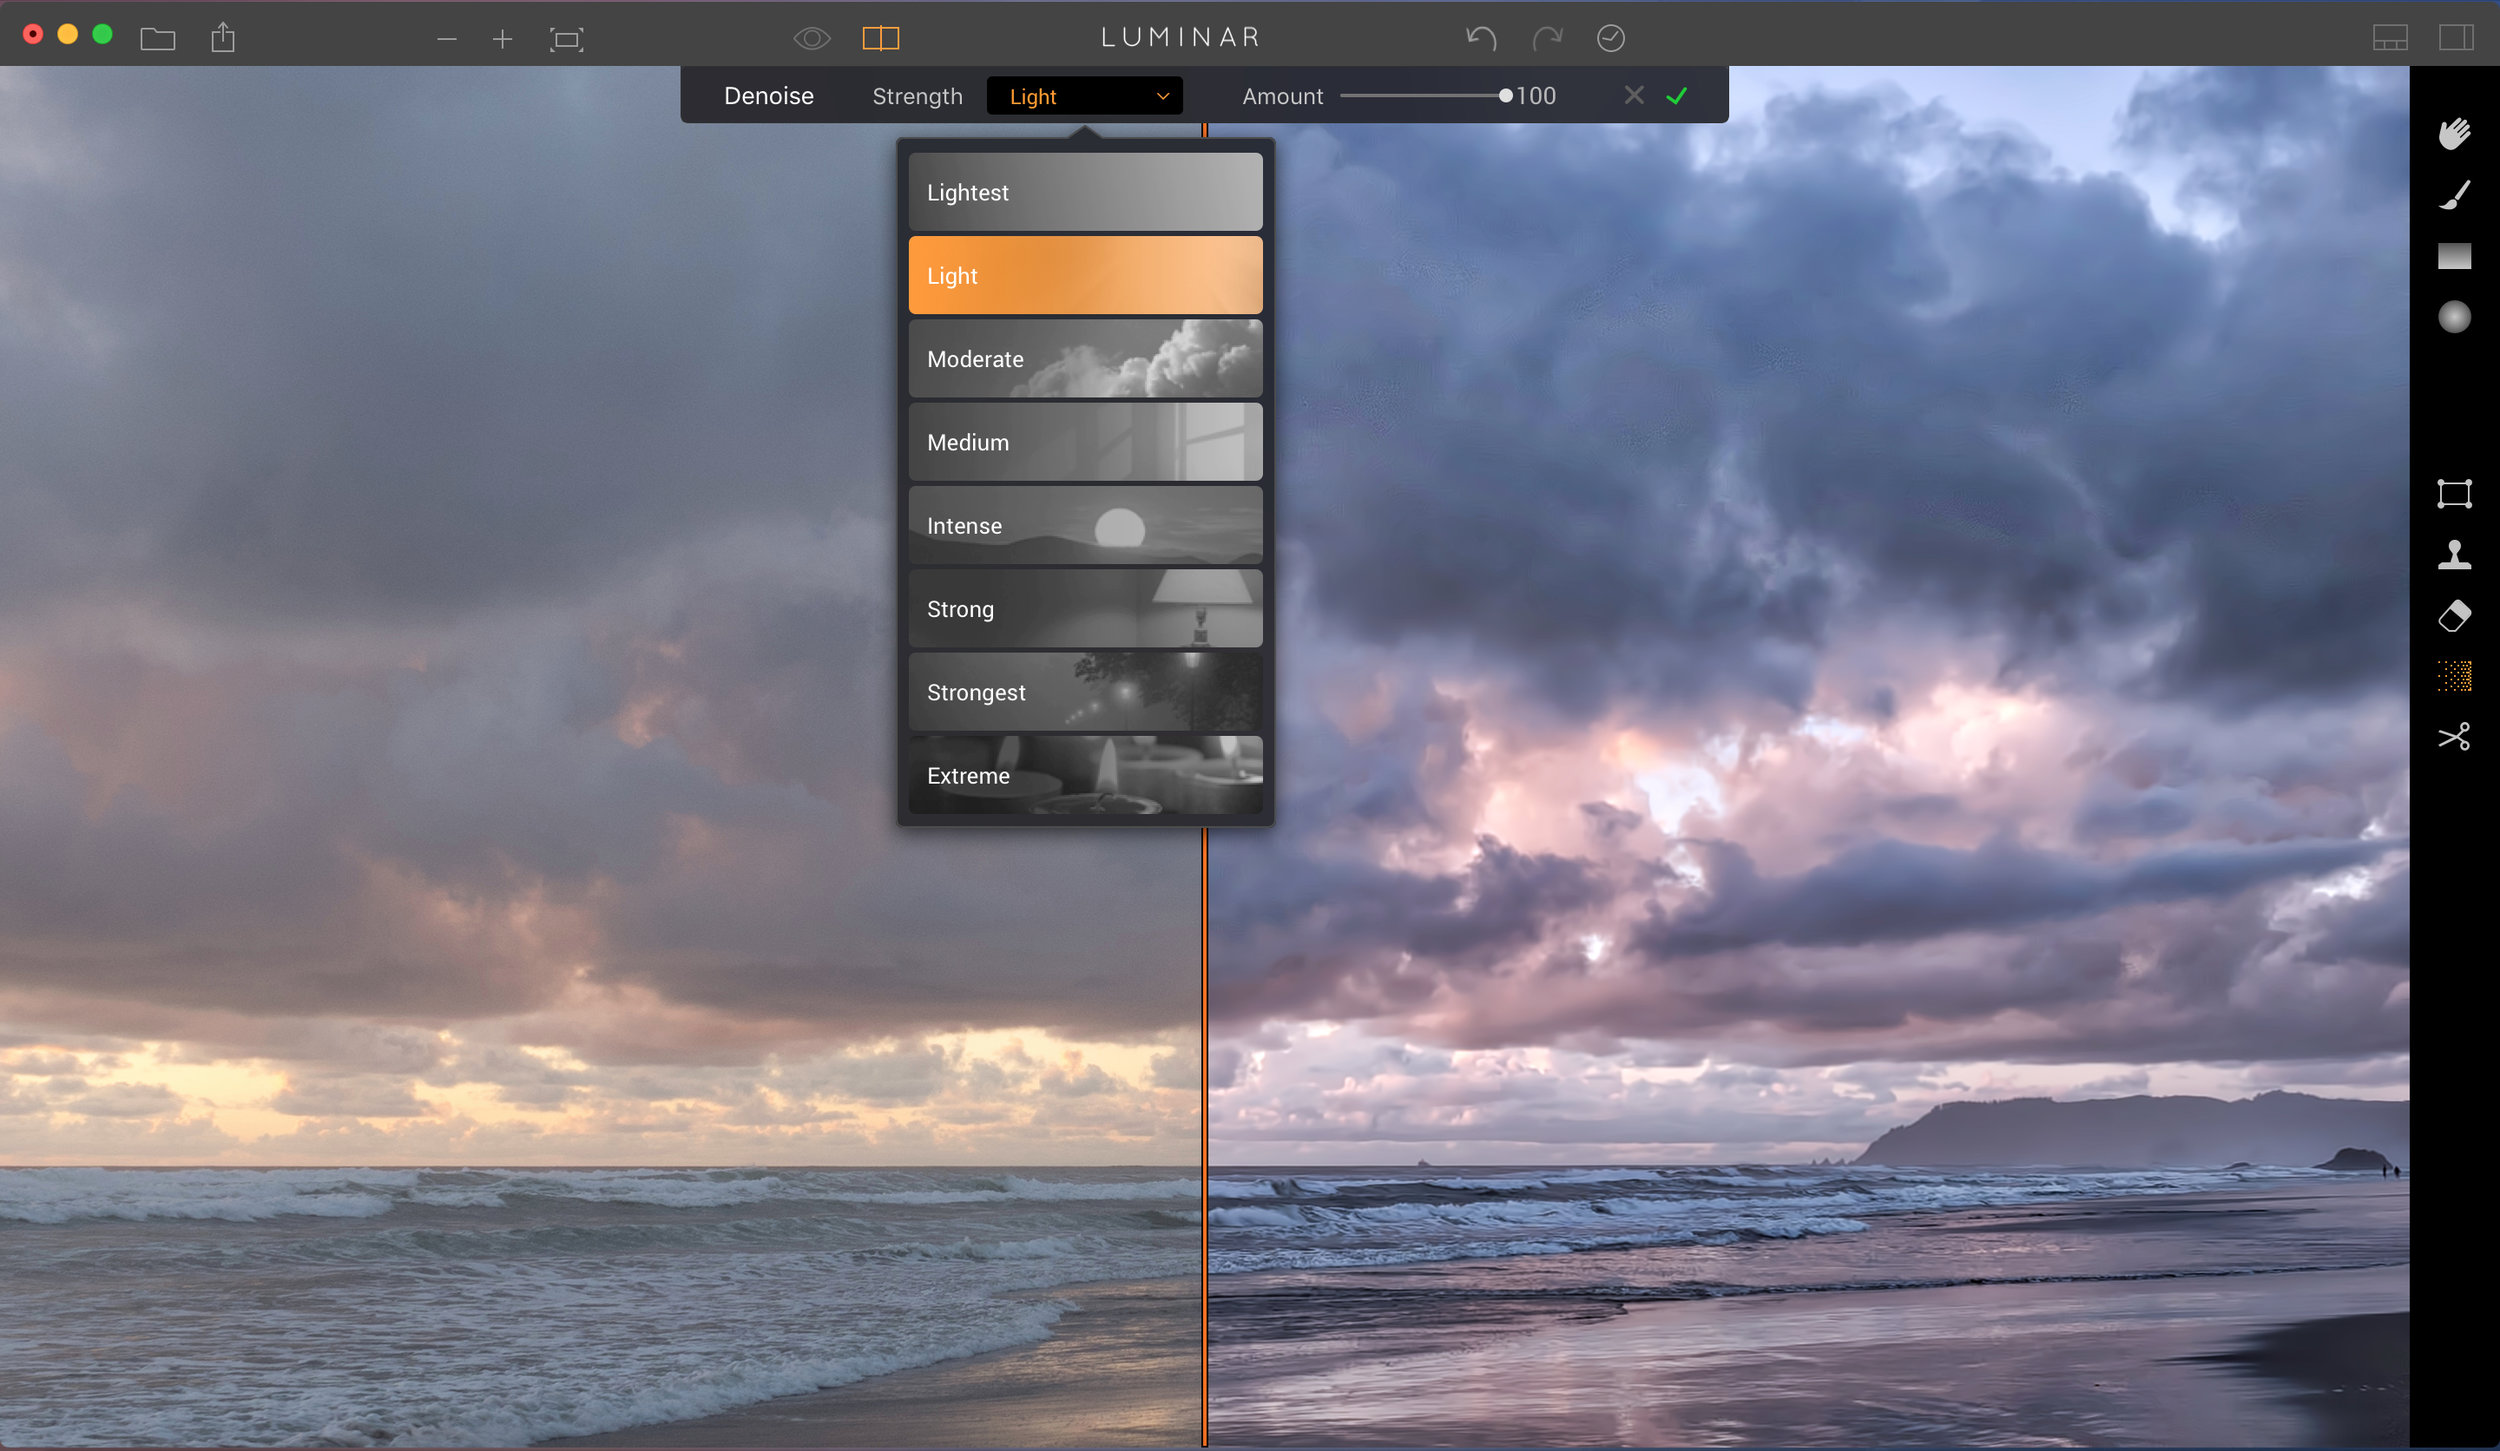 Chose the level of noise reduction that your photo needs and it will apply across the entire image. You can also drag the slider to reduce the intensity.